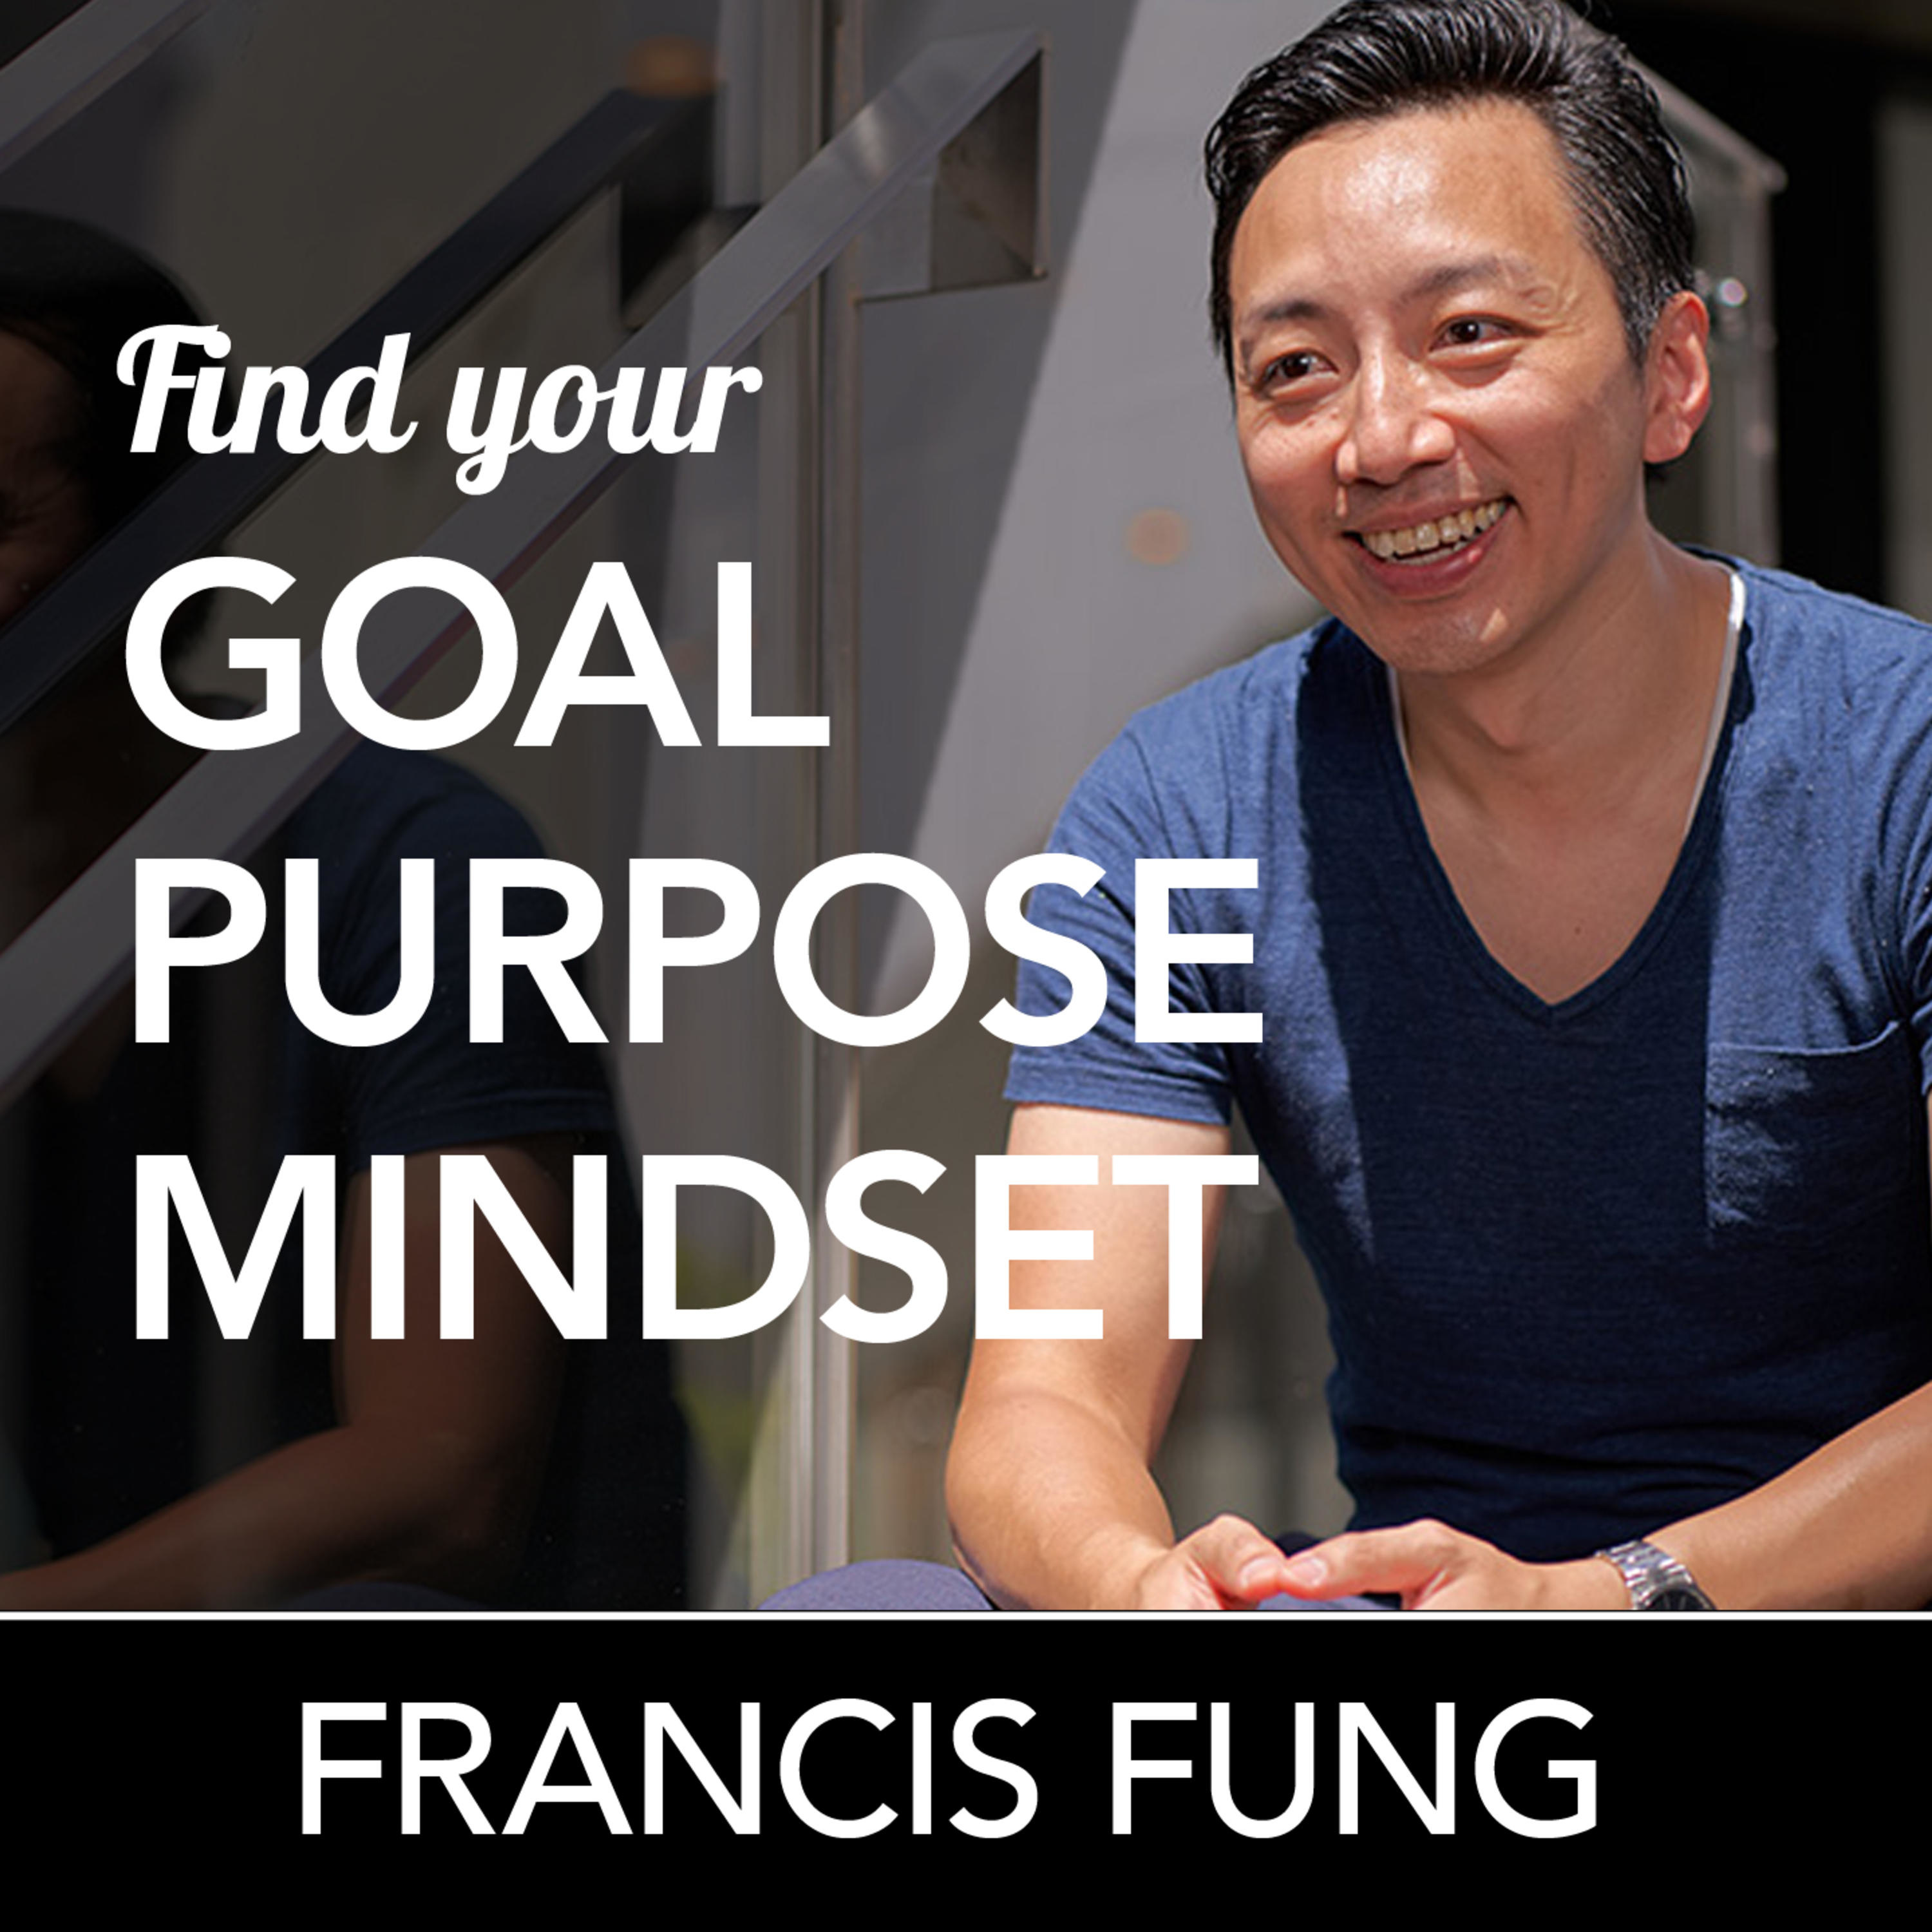 Find your Goal, Purpose, Mindset | Francis Fung